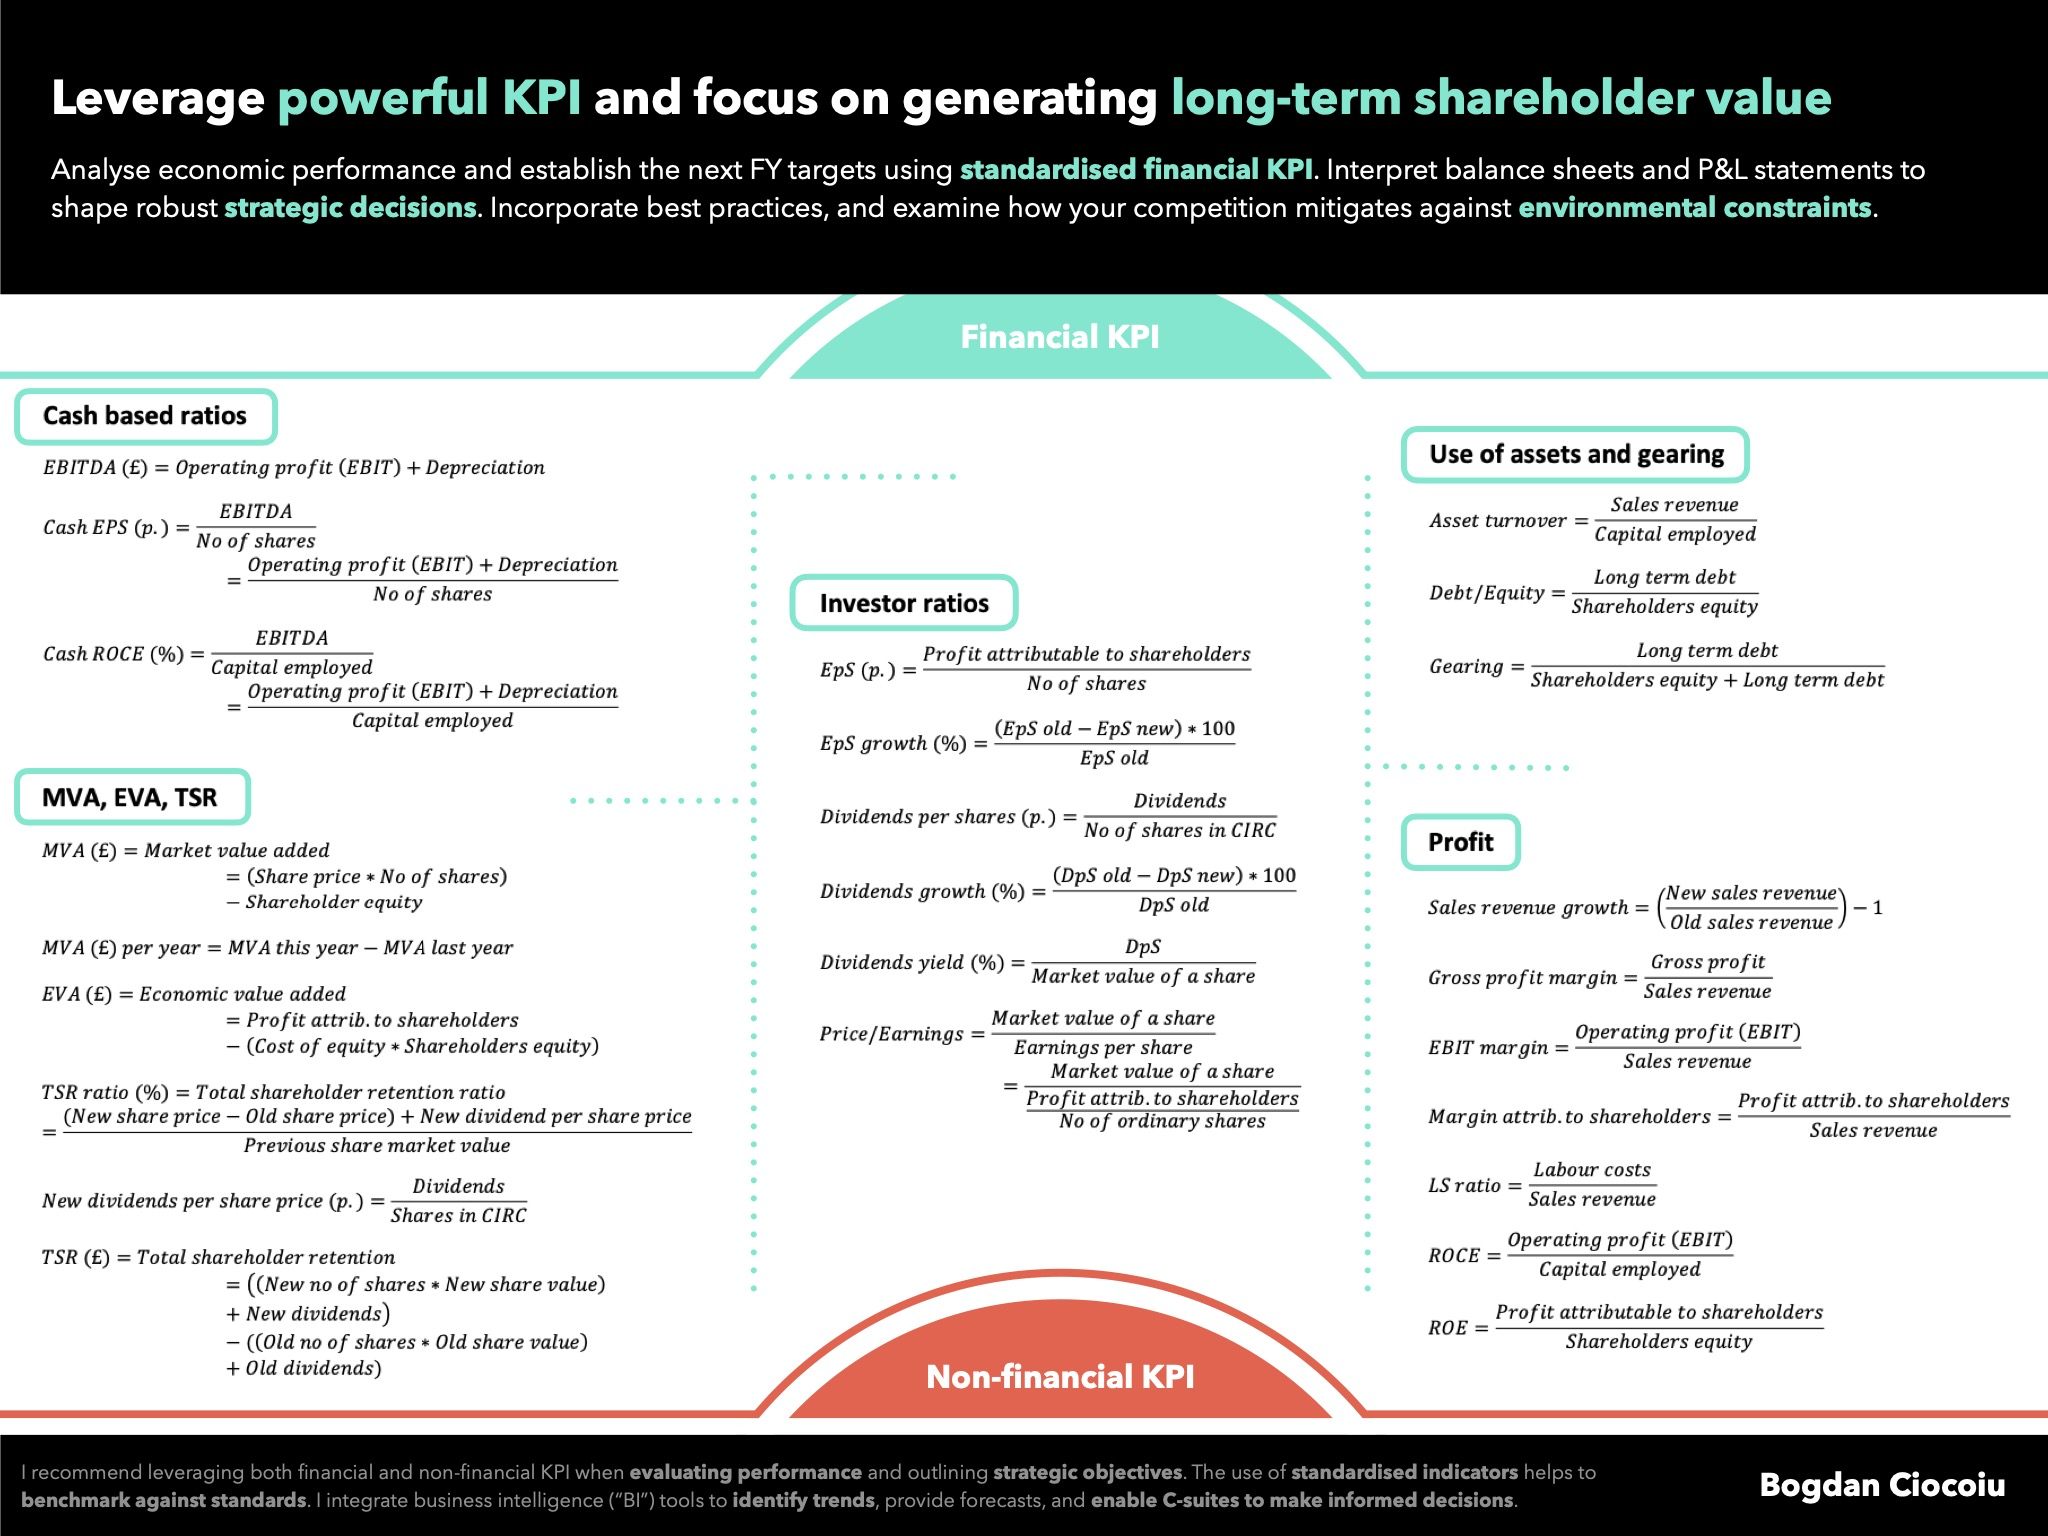 Leverage powerful financial drivers to create long-term shareholder value